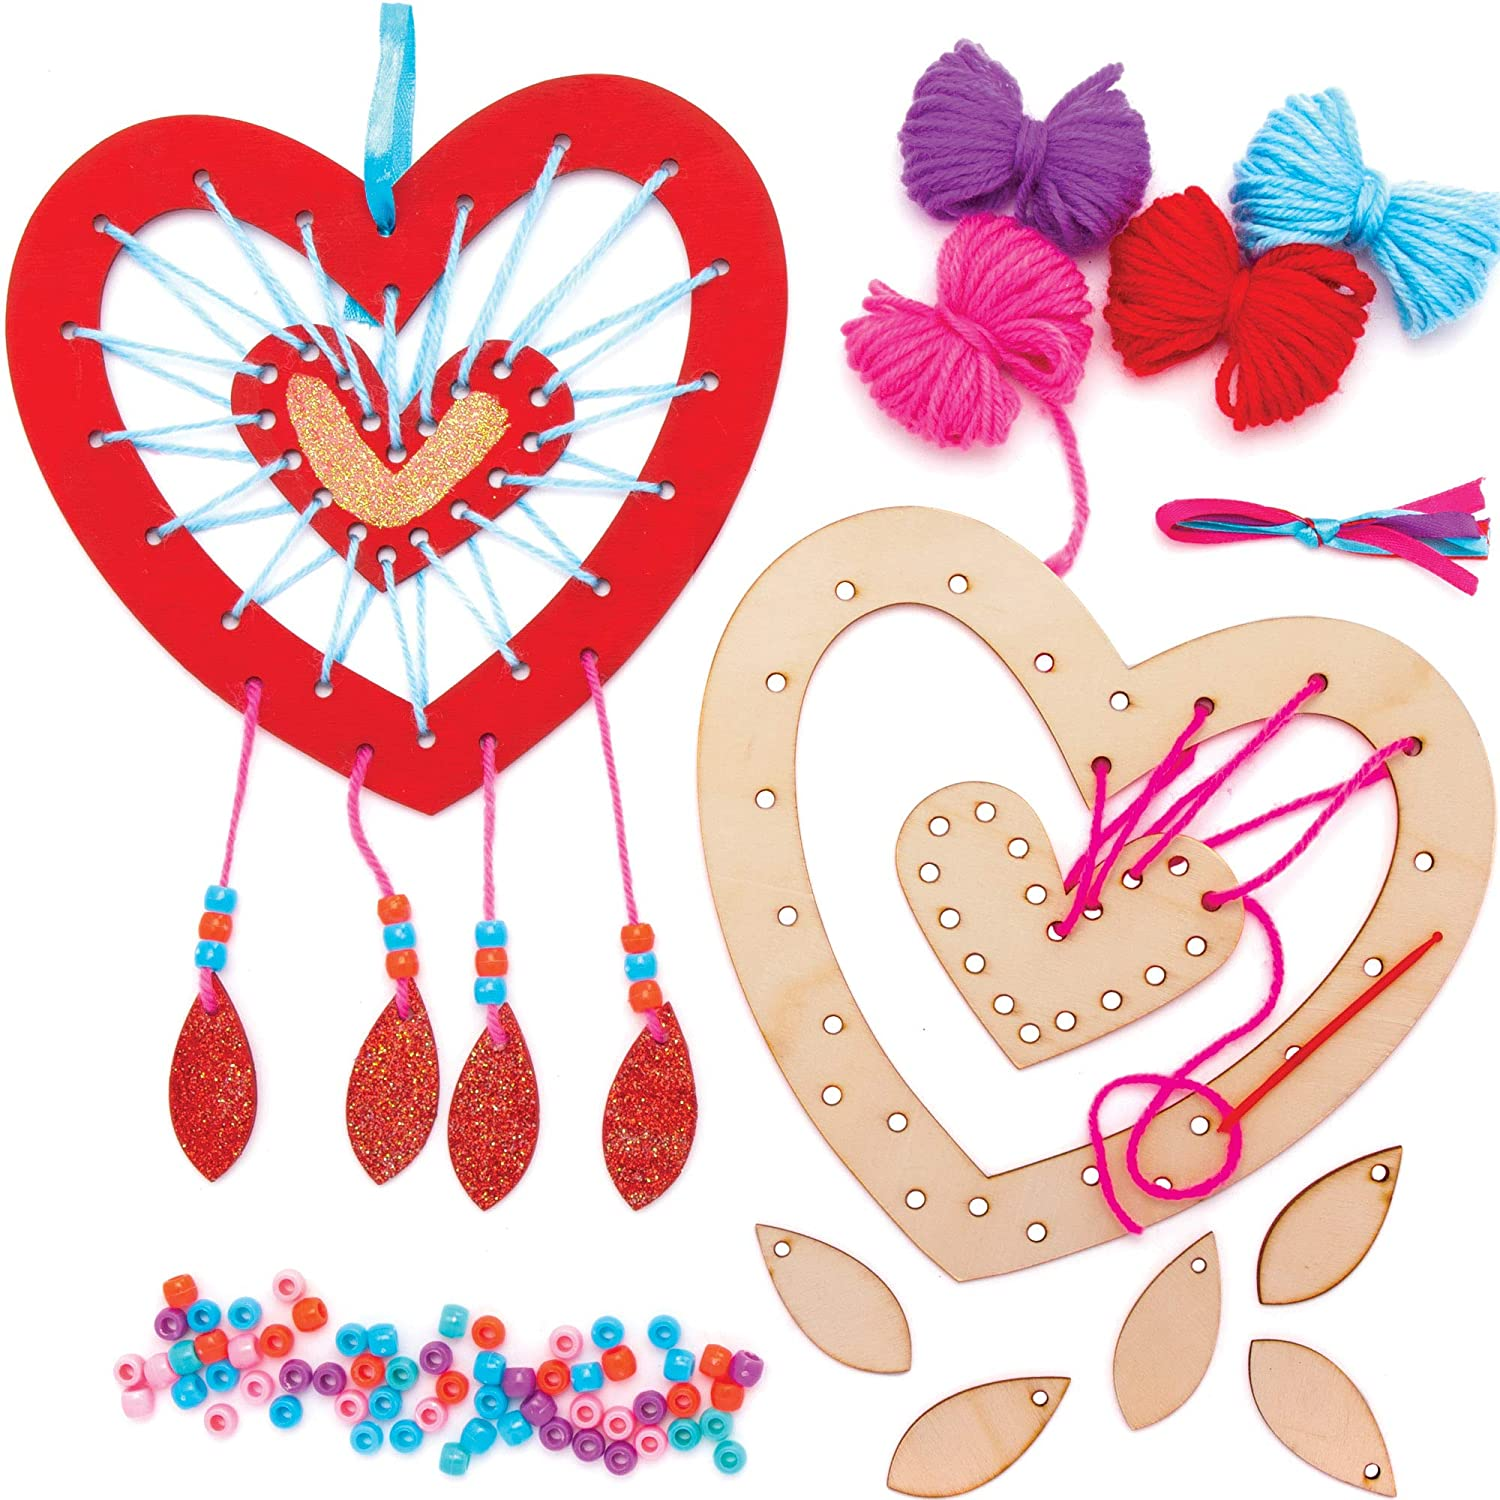 Baker Ross Heart Wooden Dreamcatcher Kits (4 Pack) Ideal for Kids Arts and Craft Project, Educational Toys, Gifts and Keepsakes